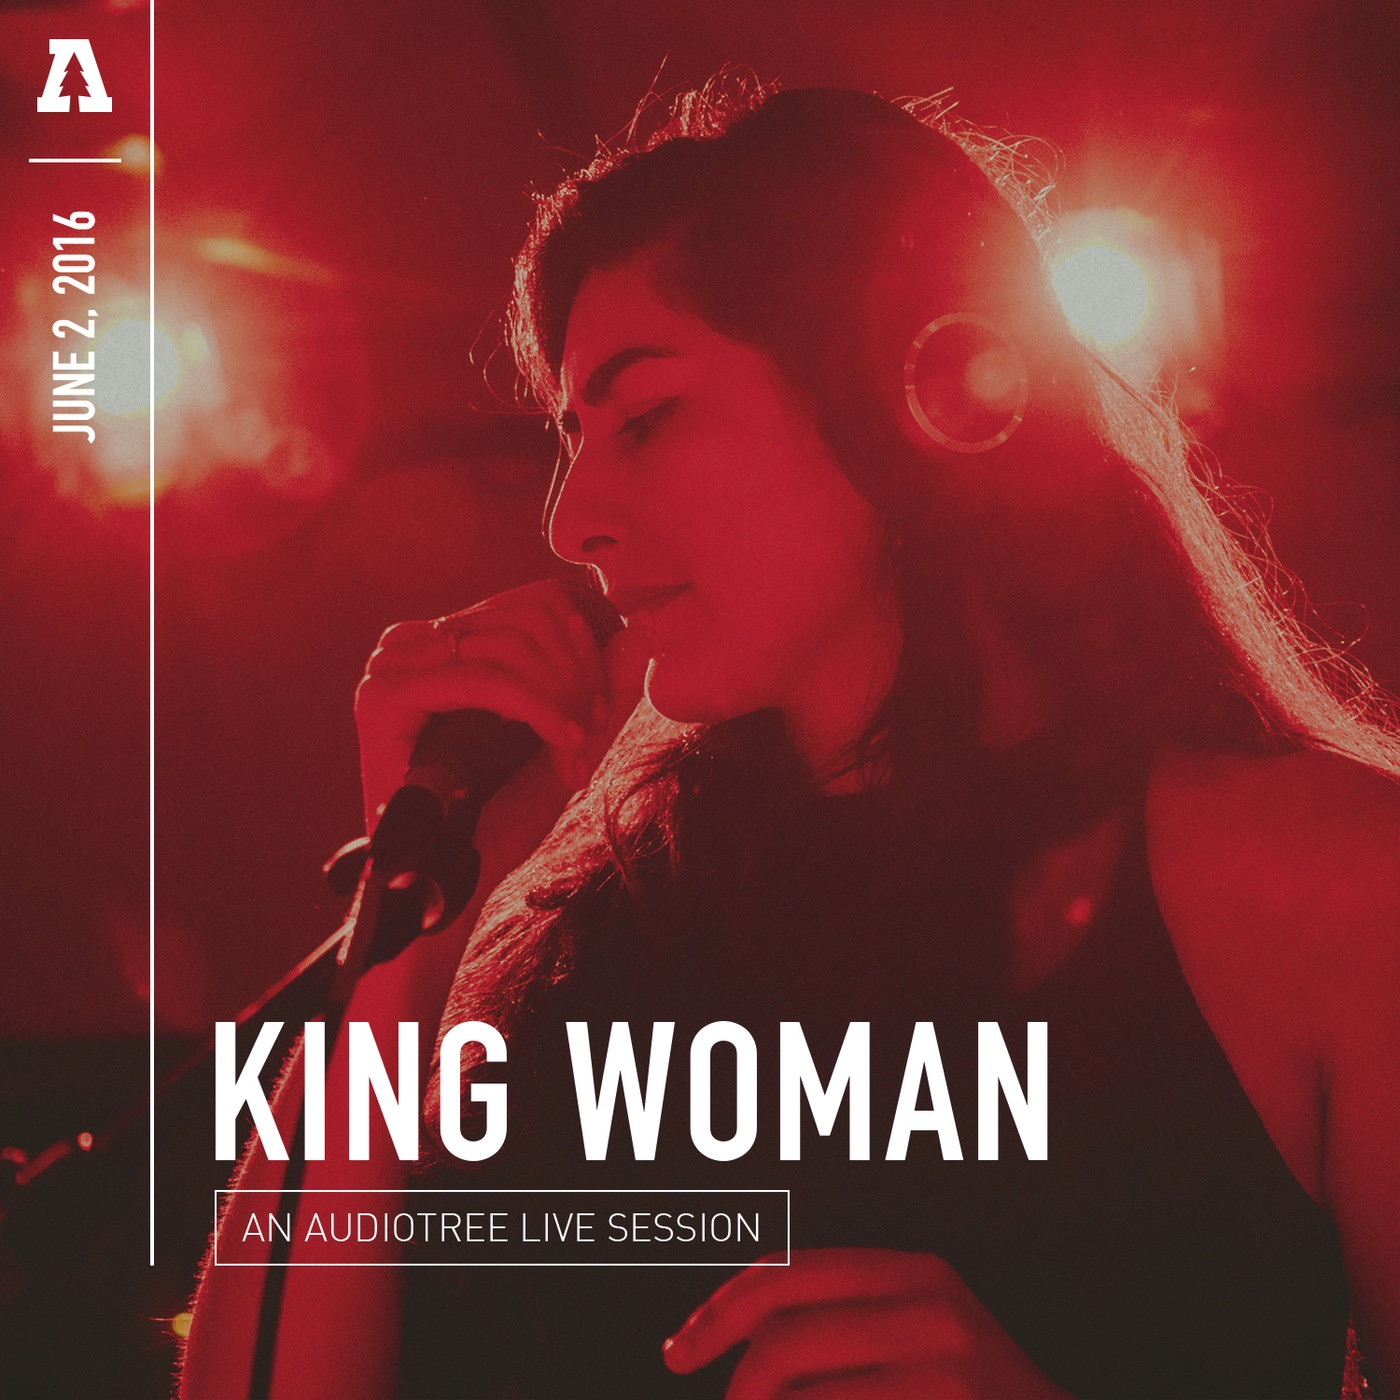 King Woman on Audiotree Live - EP